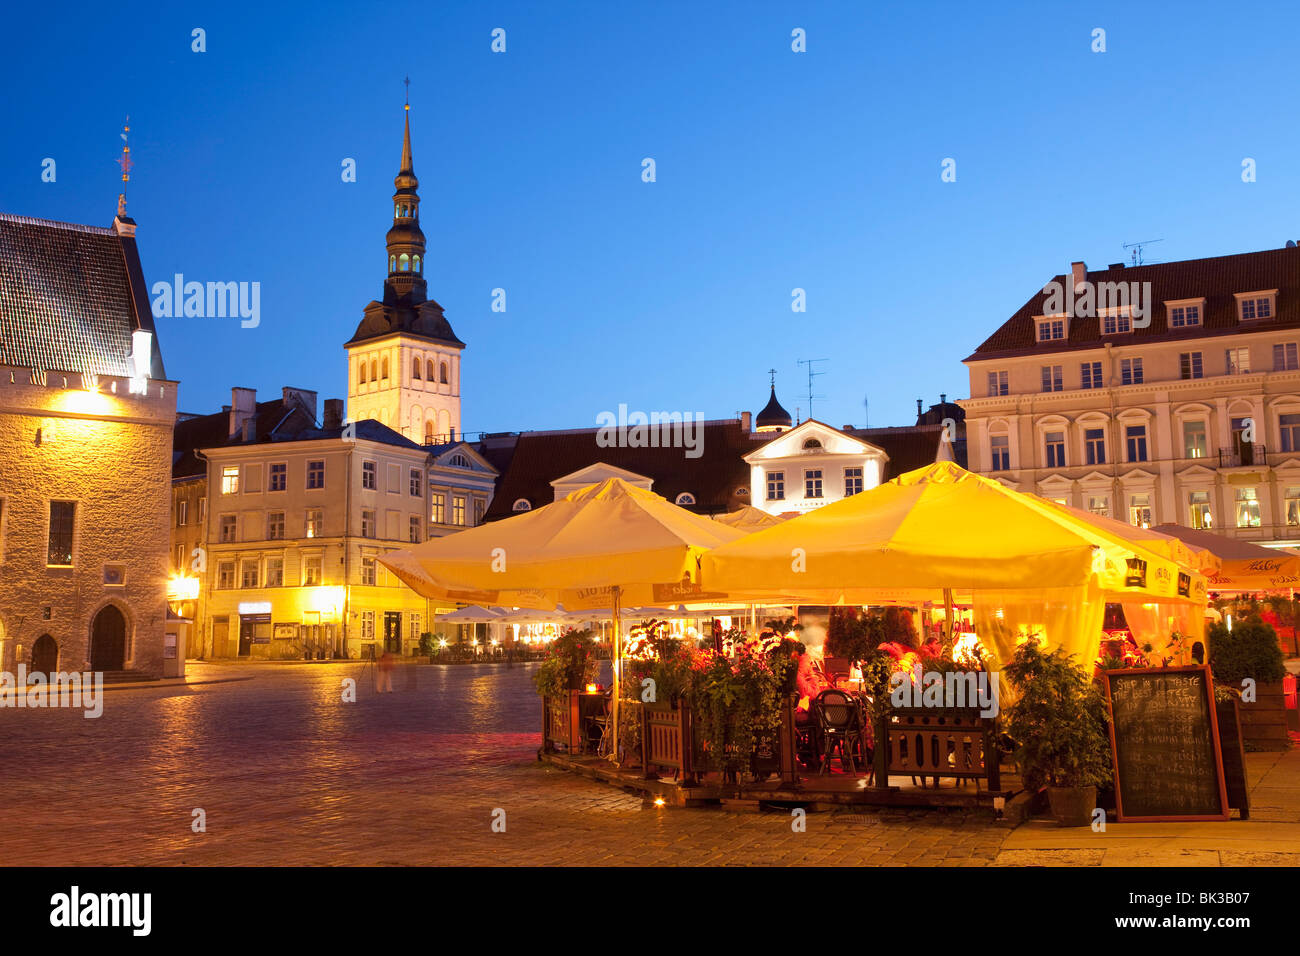 Tallinn, Estonia, Baltic States, Europe - Stock Image